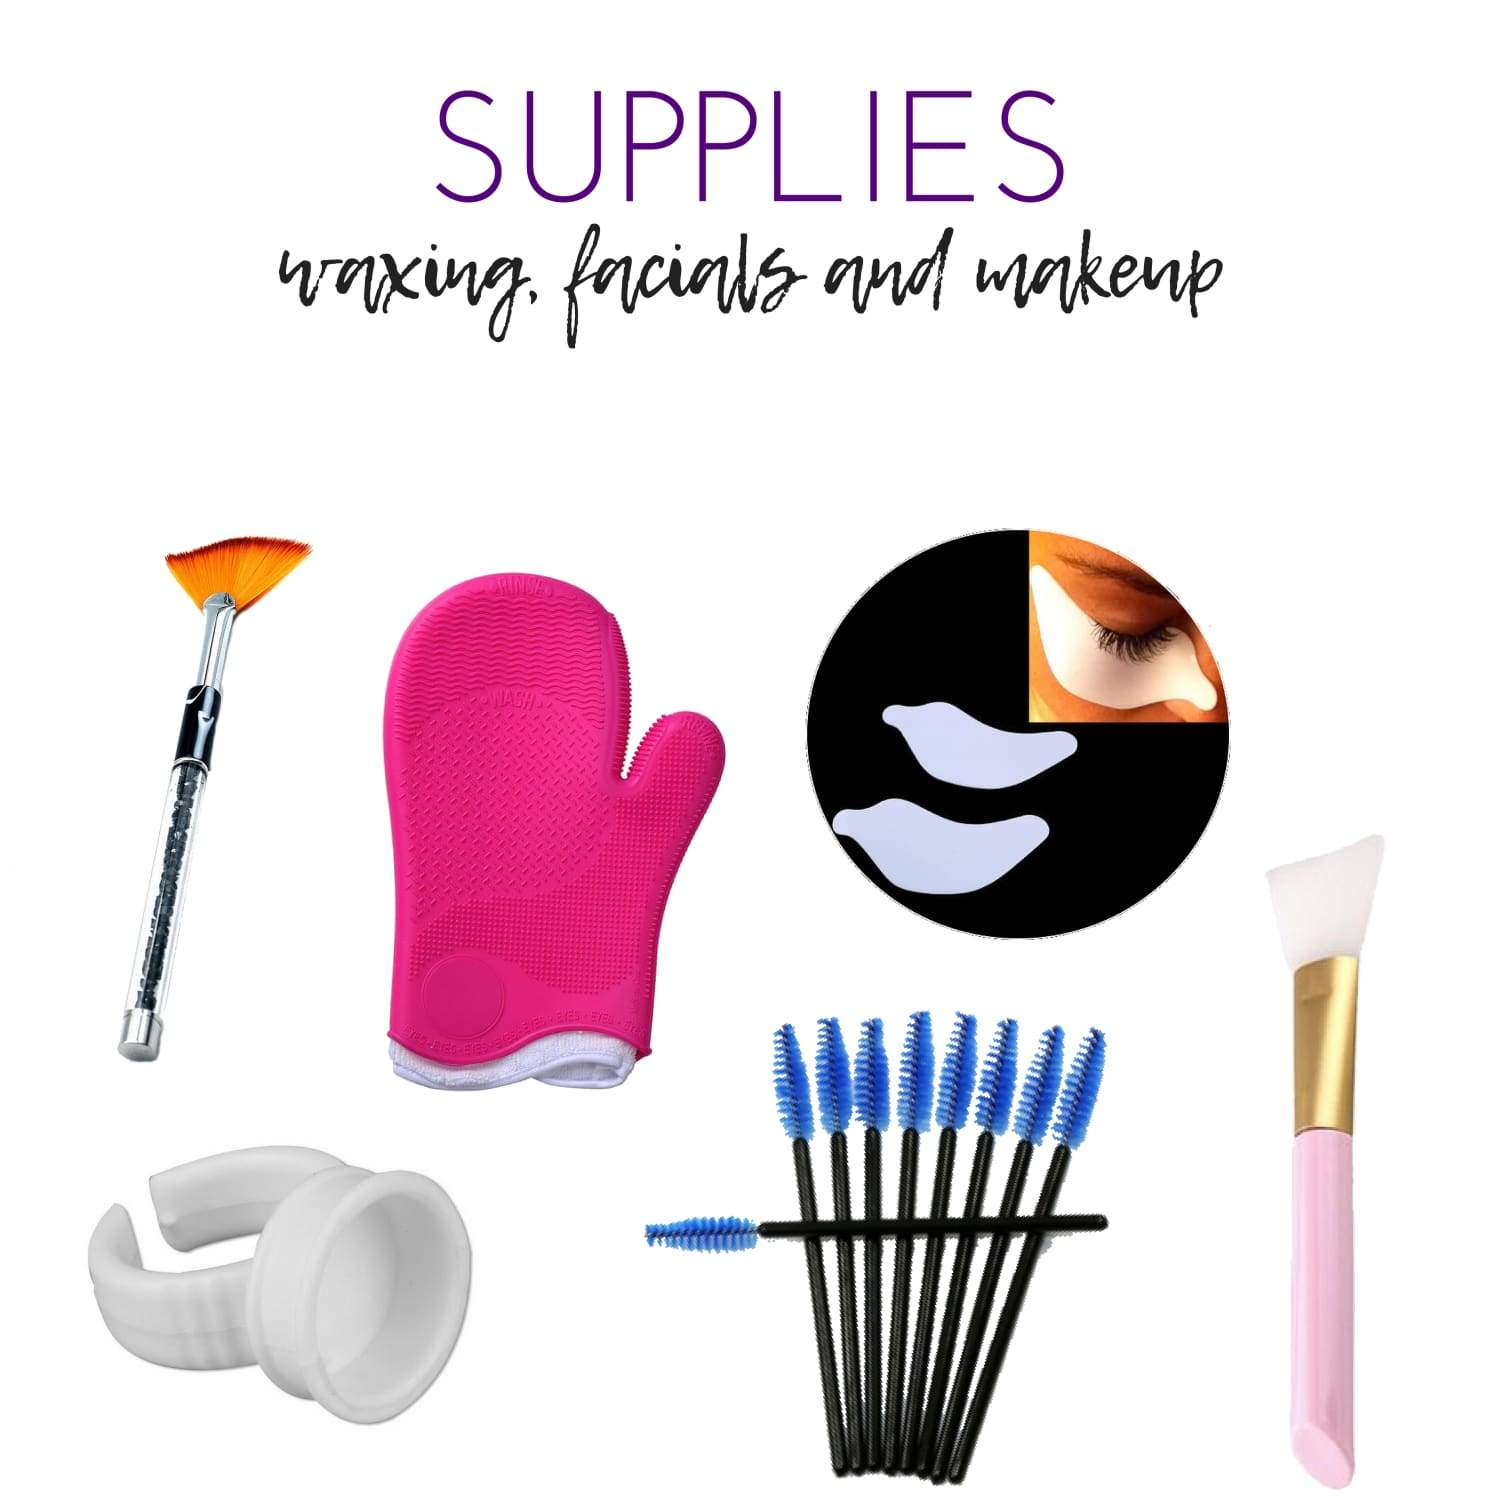 Esthetician Supplies